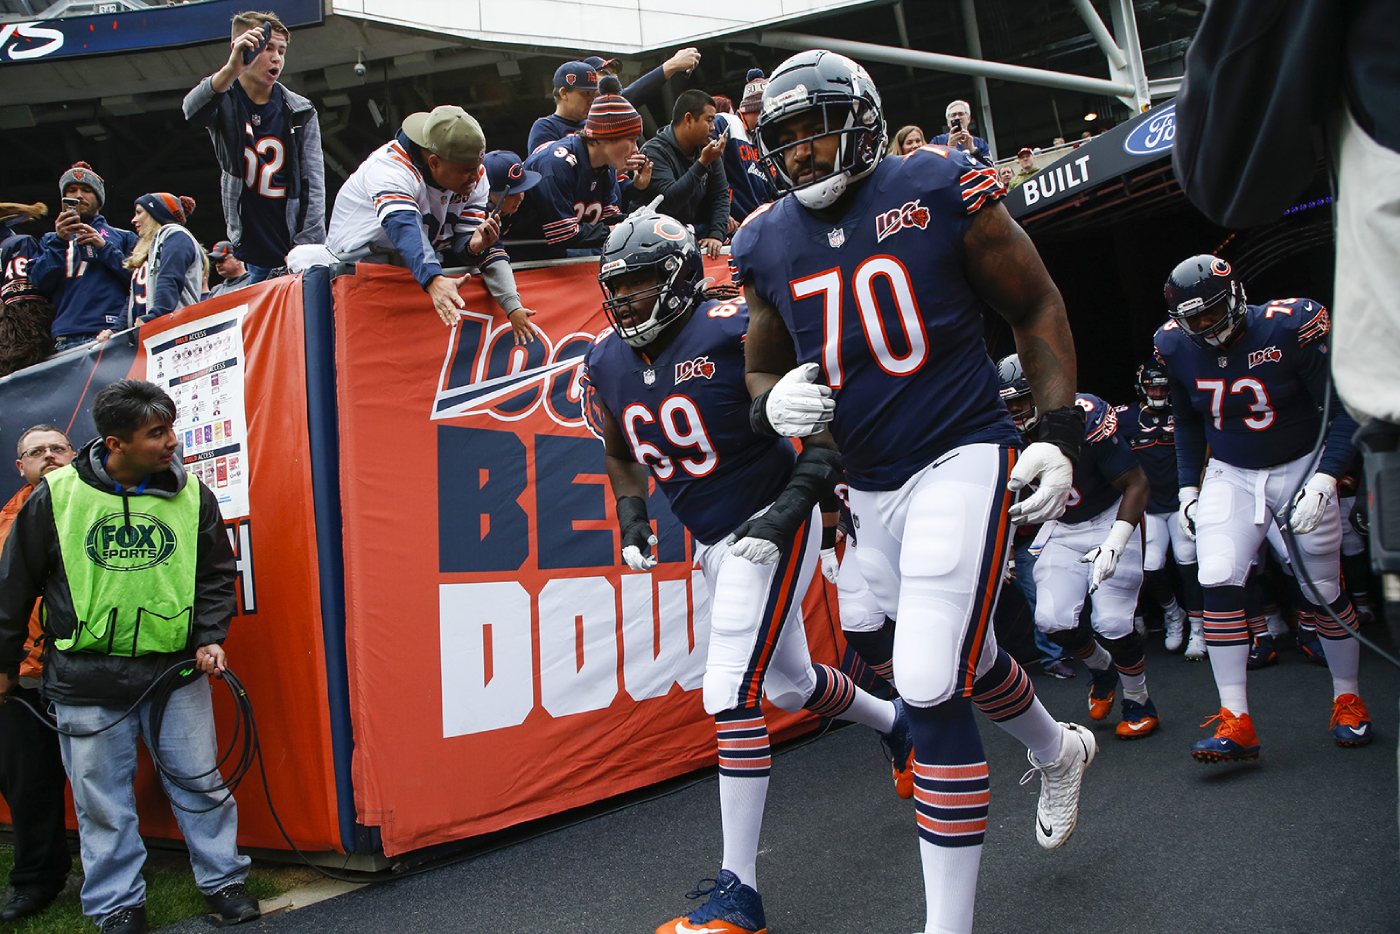 After a hot start, the Chicago Bears have struggled recently. Now, they will be without their $32 million man, Bobby Massie.